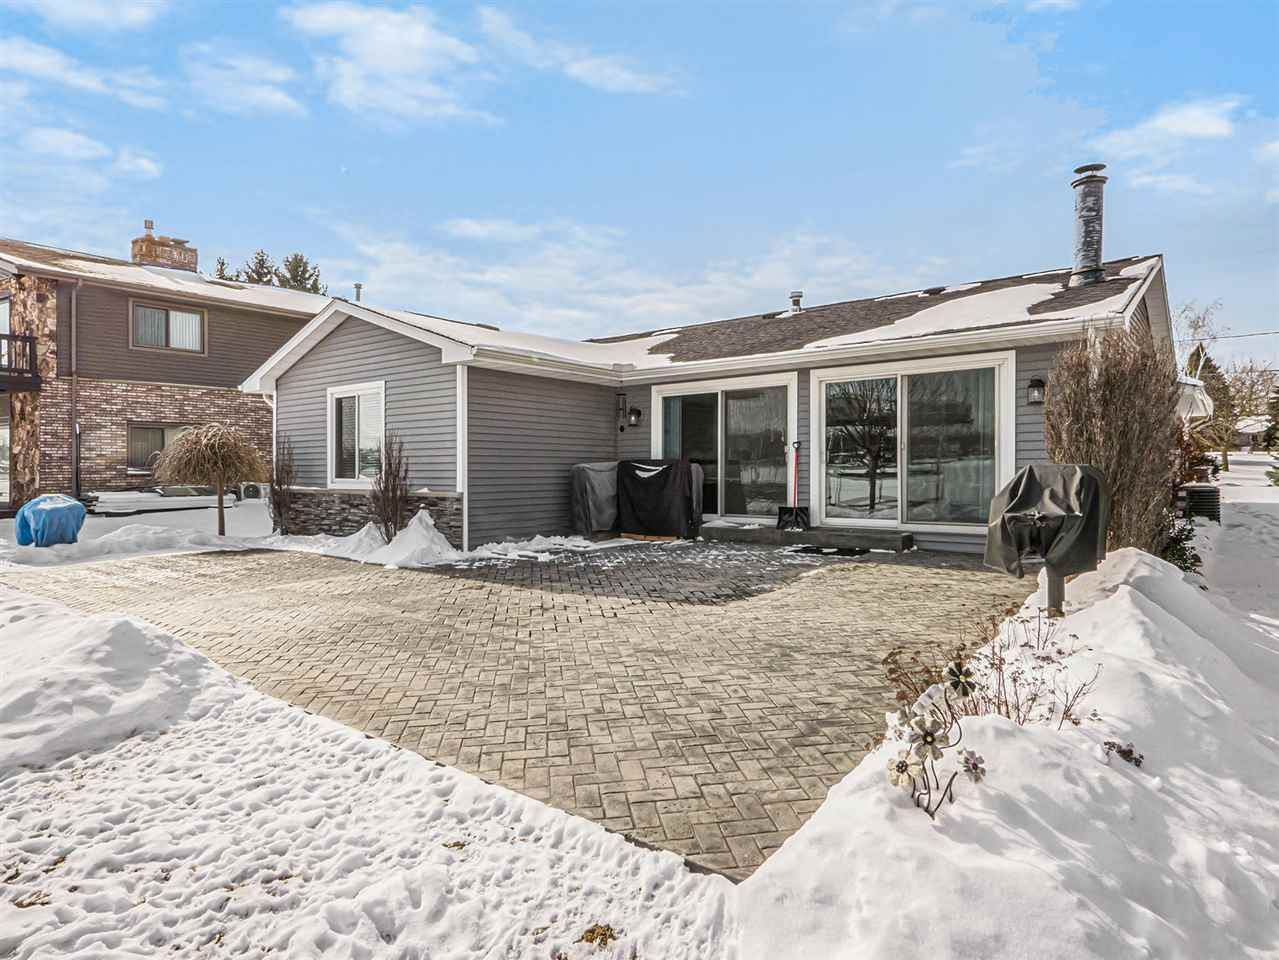 122 Princess Dr - Photo 1